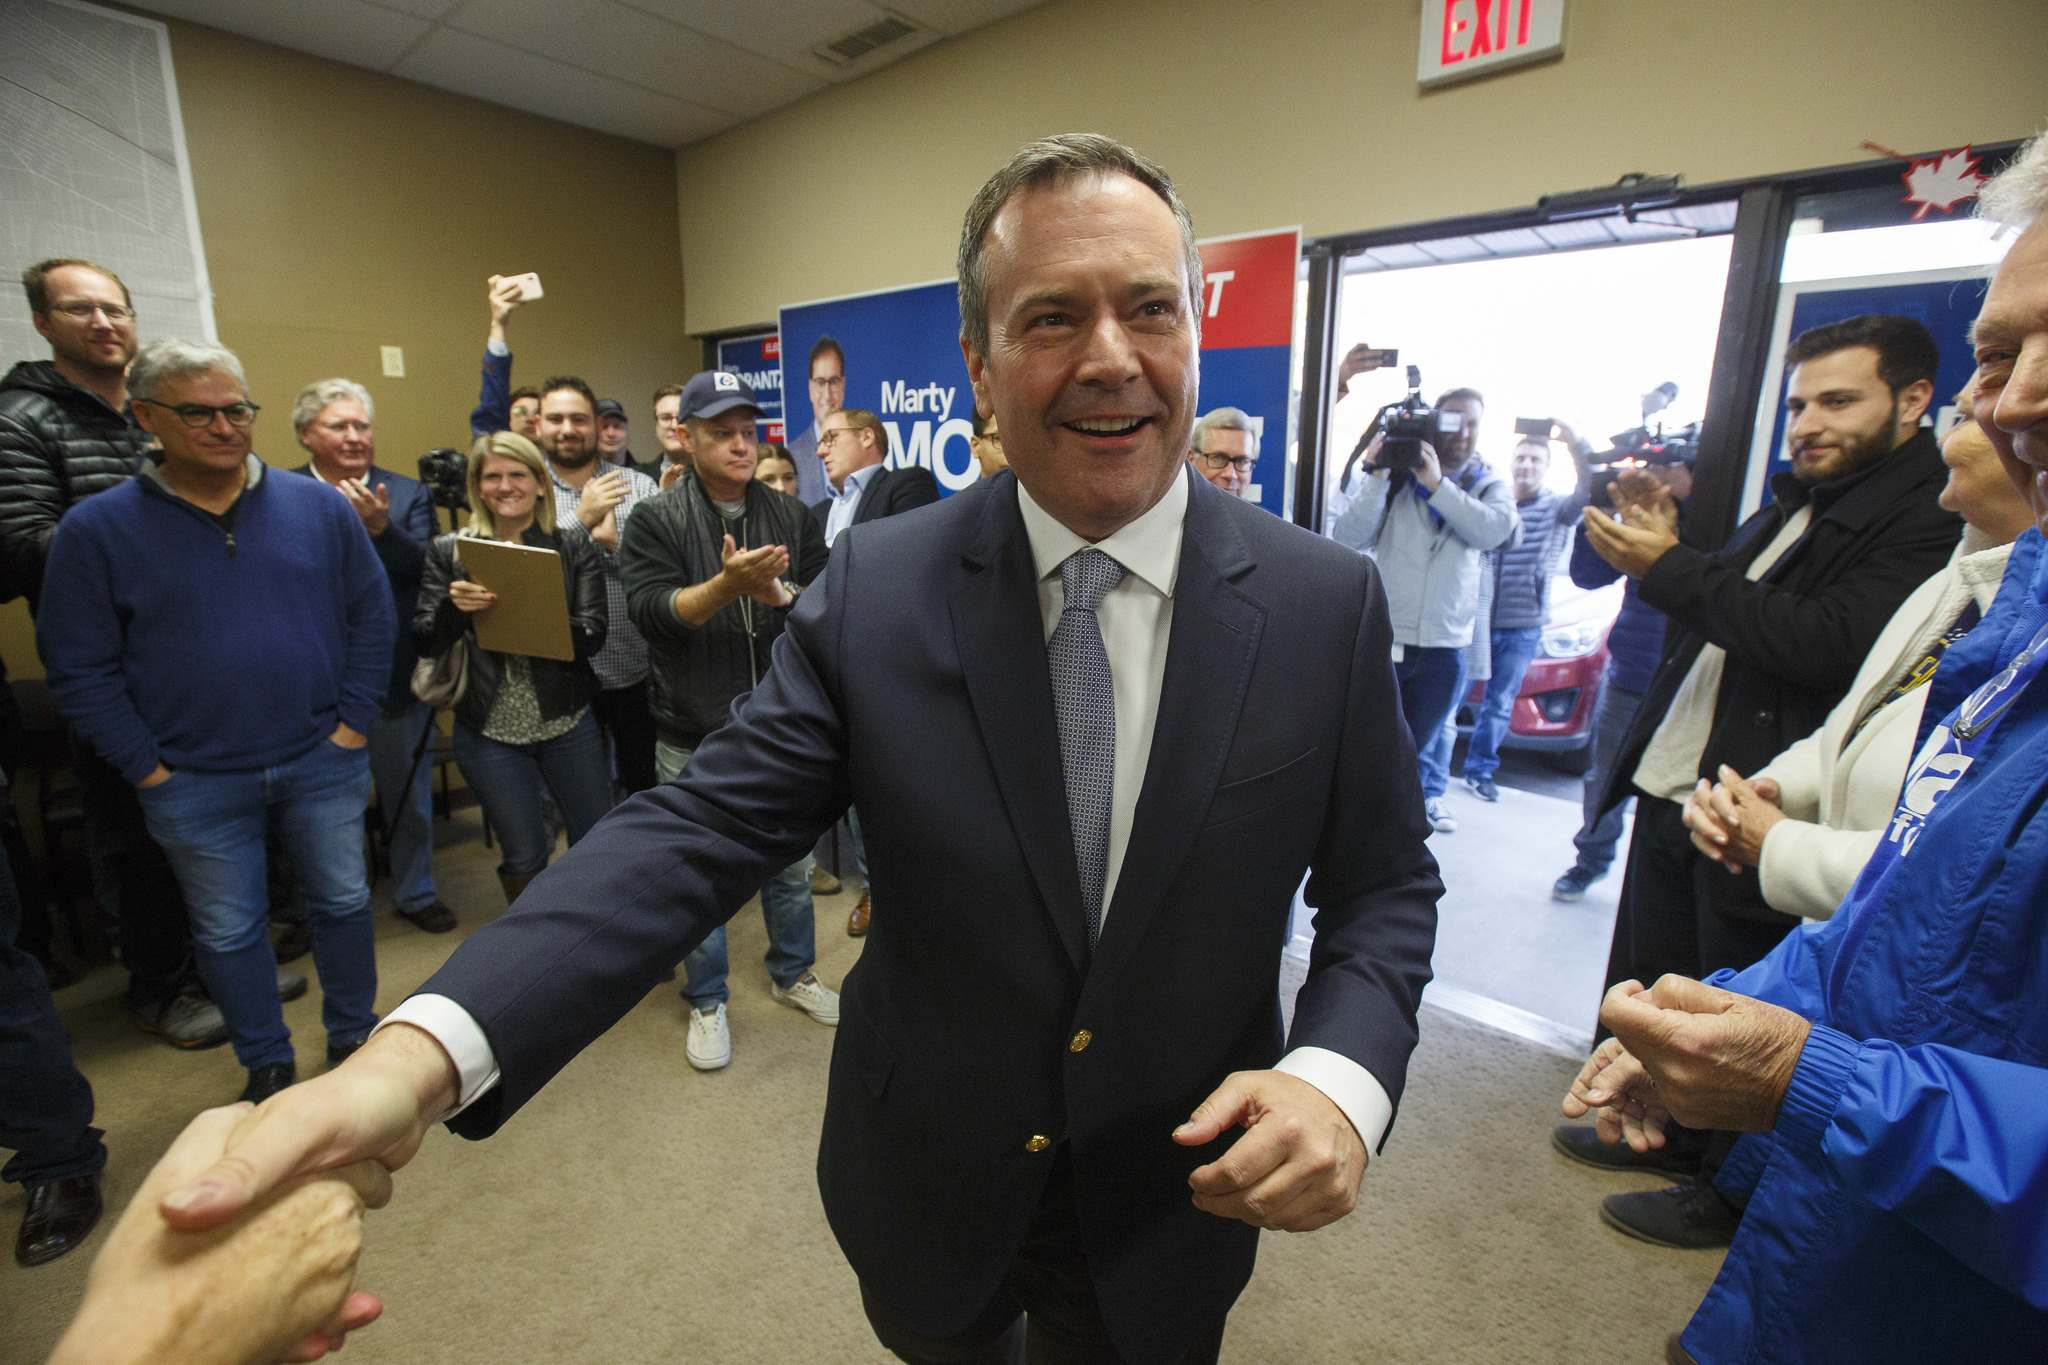 <p>Alberta Premier Jason Kenney, arrives at the campaign office of Conservative Party of Canada candidate Marty Morantz Saturday.</p>